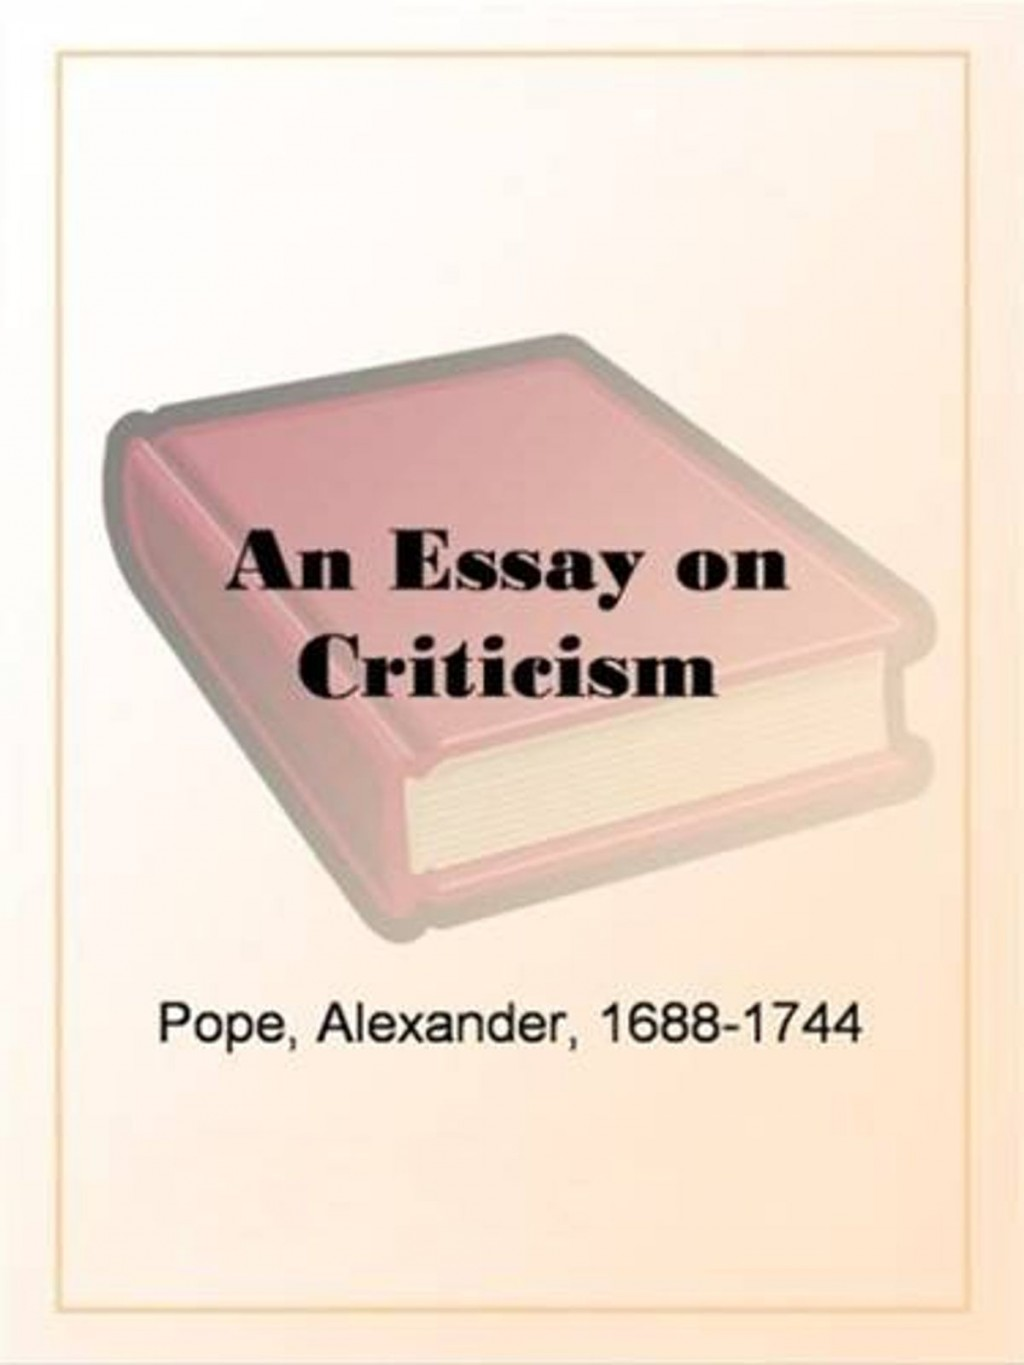 020 An Essay On Criticism Pope Unique Part 2 Pope's Was Written In Large